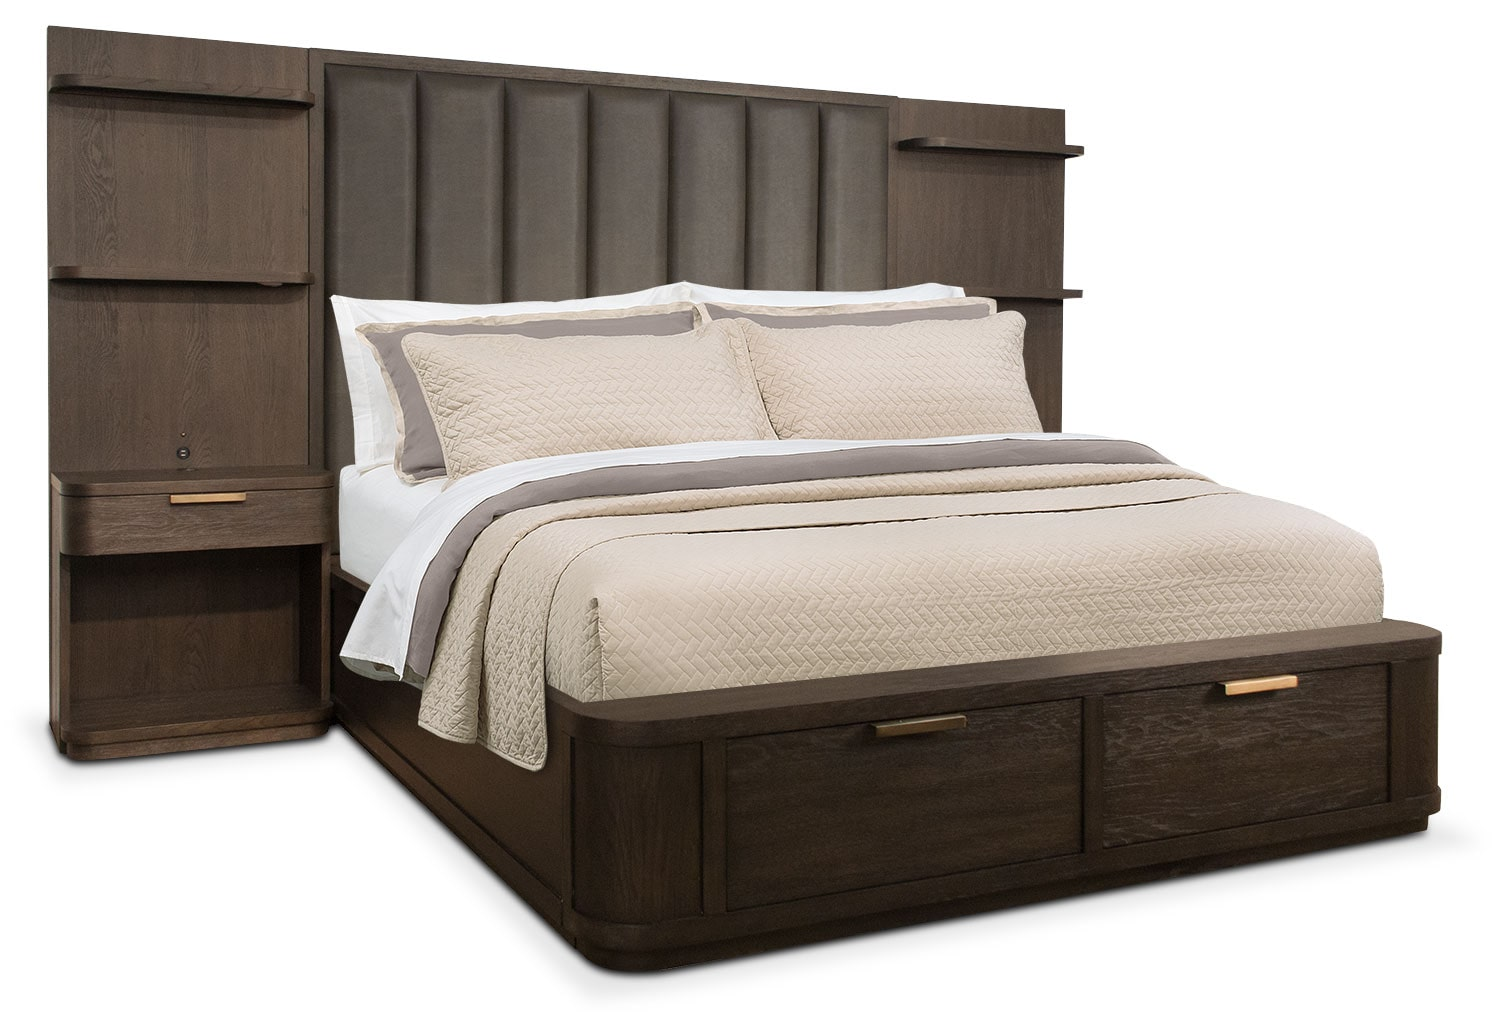 Malibu Queen Tall Upholstered Storage Wall Bed Umber